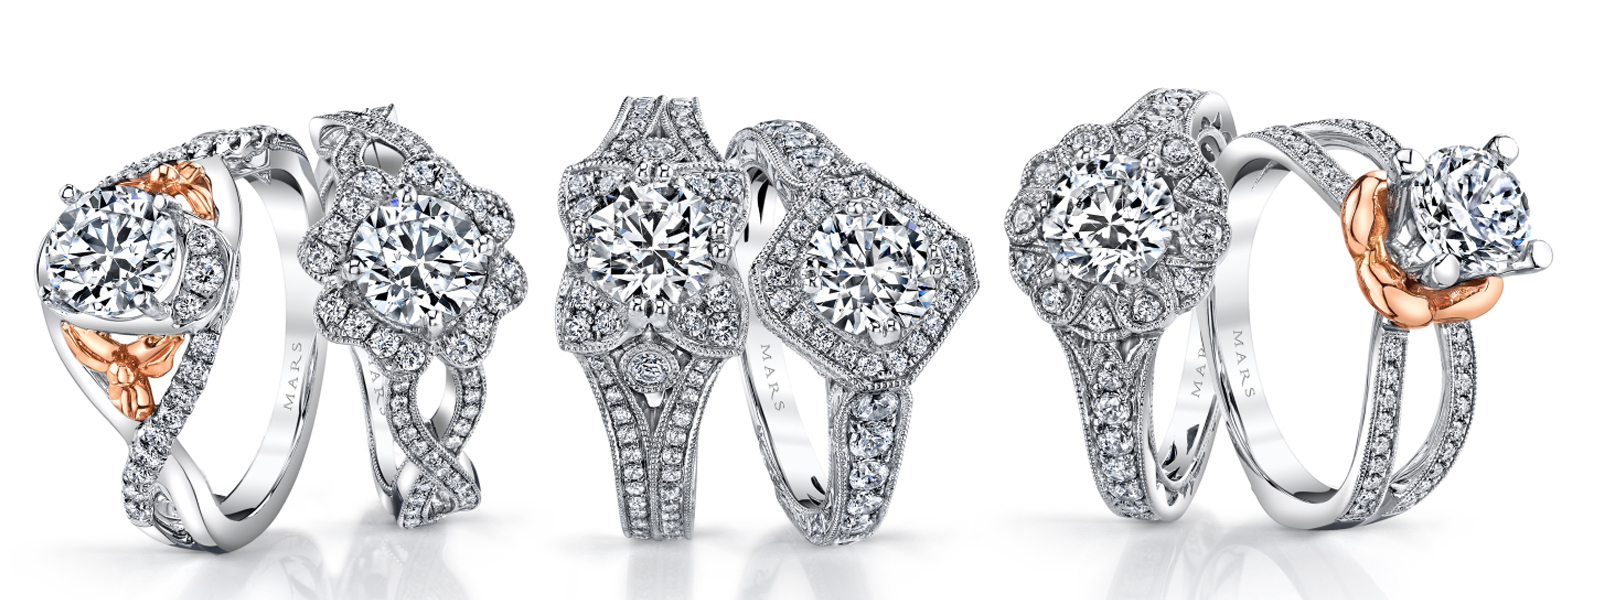 Fine Diamond Engagement Rings - at any budget. Arezzo Jewelers - Chicago, IL.